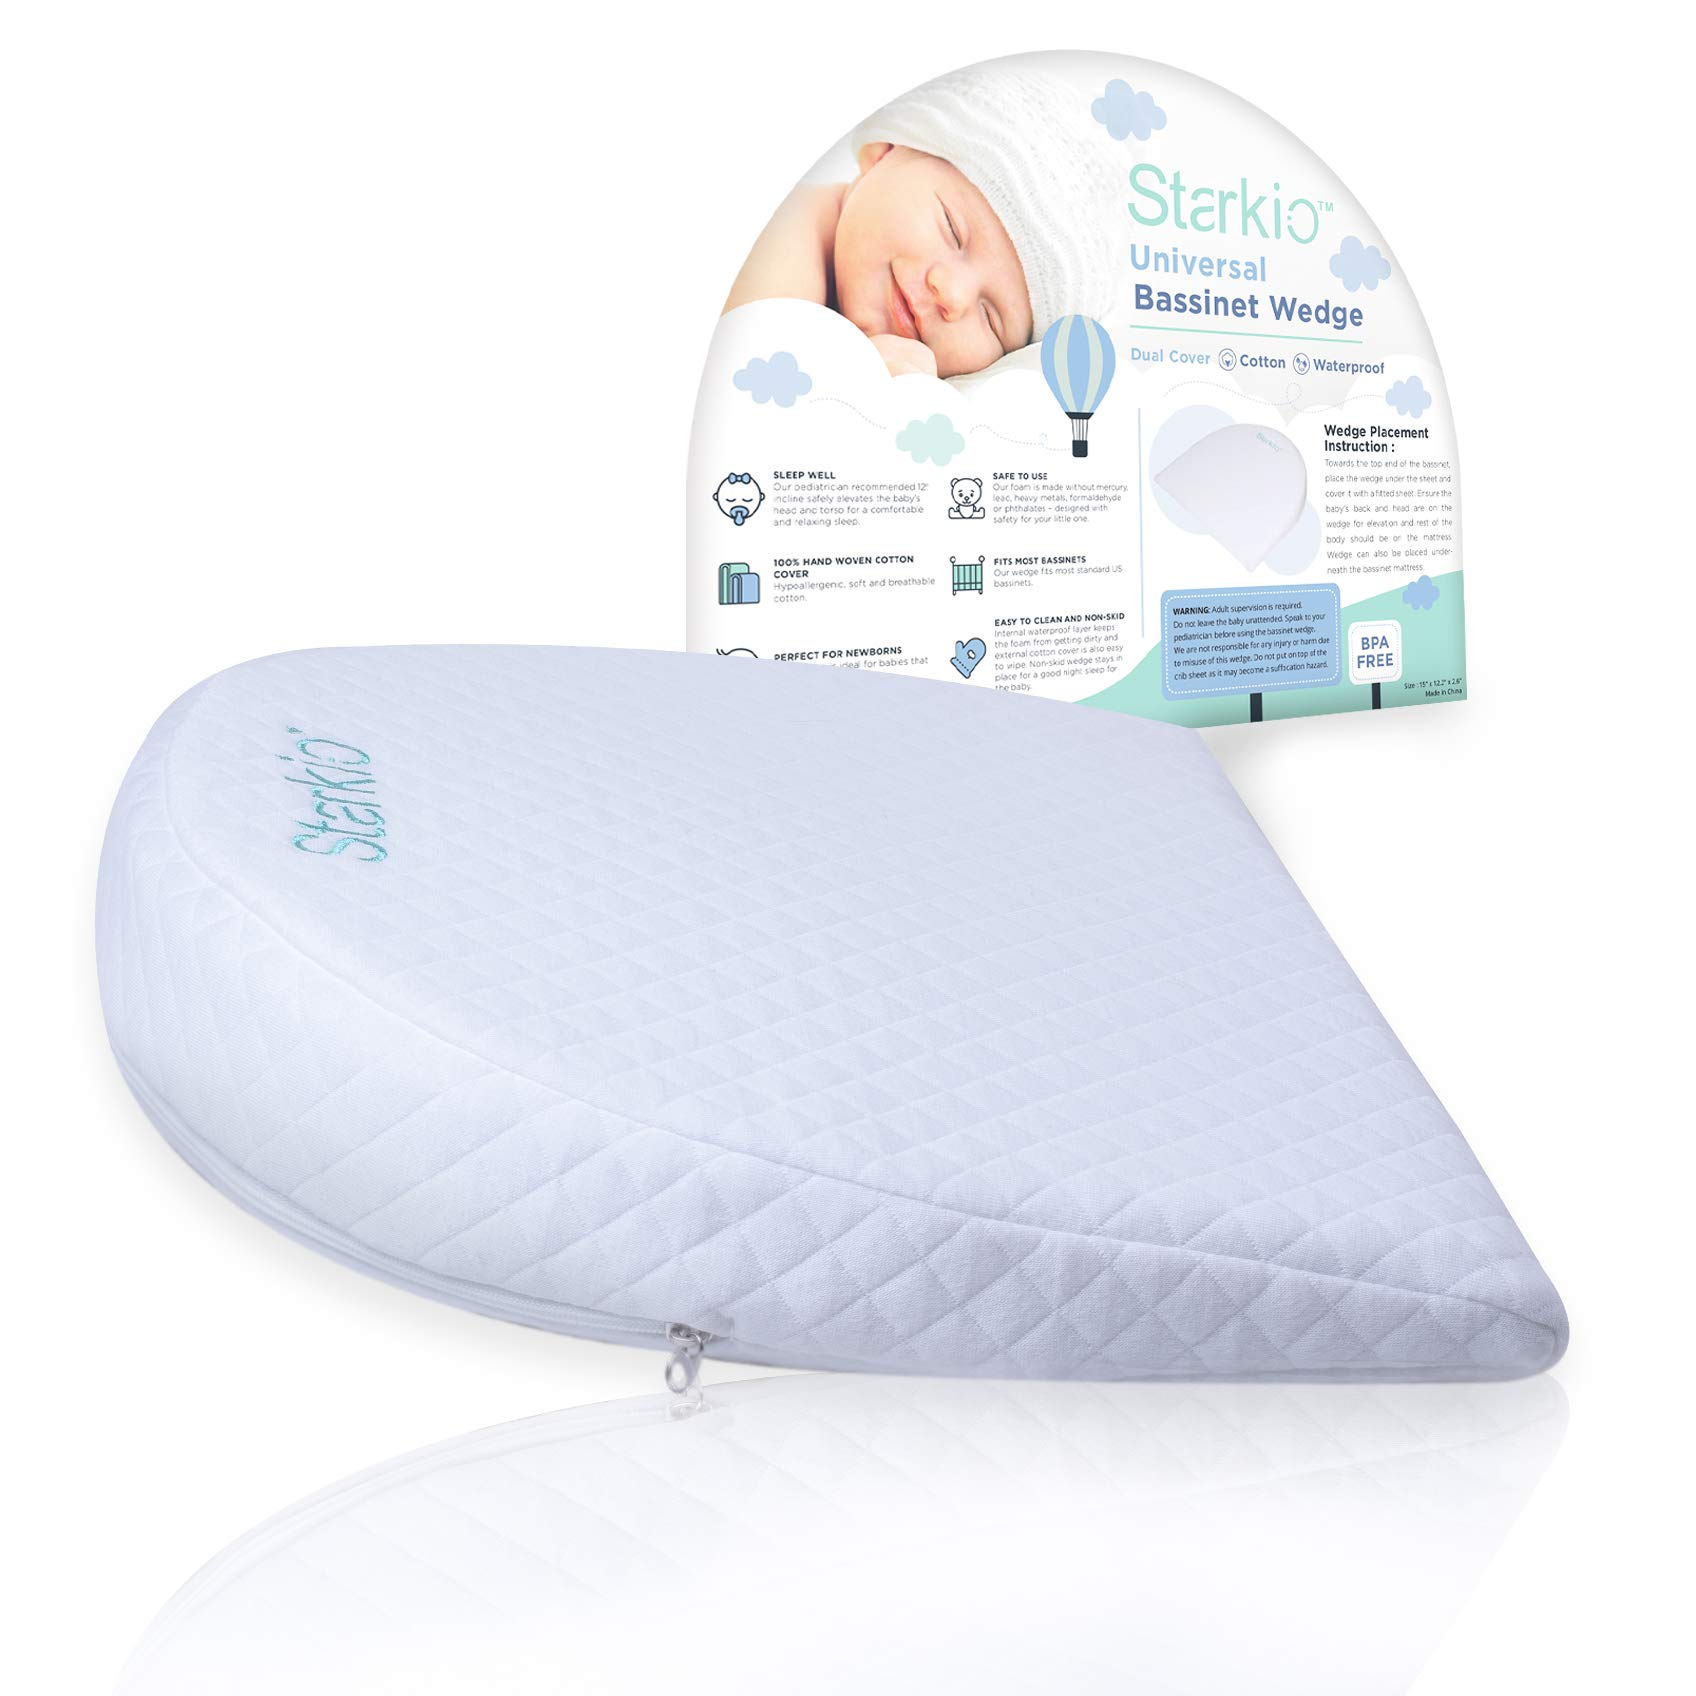 Starkio Bassinet Wedge For Baby Reflux Relief | Infant Gerd Wedge Sleeper Pillow | Newborn Crib Elevated Incline Insert Sleep Positioner | Pregnancy Pillow Wedge | Memory Foam & Removable Cotton Cover by Starkio